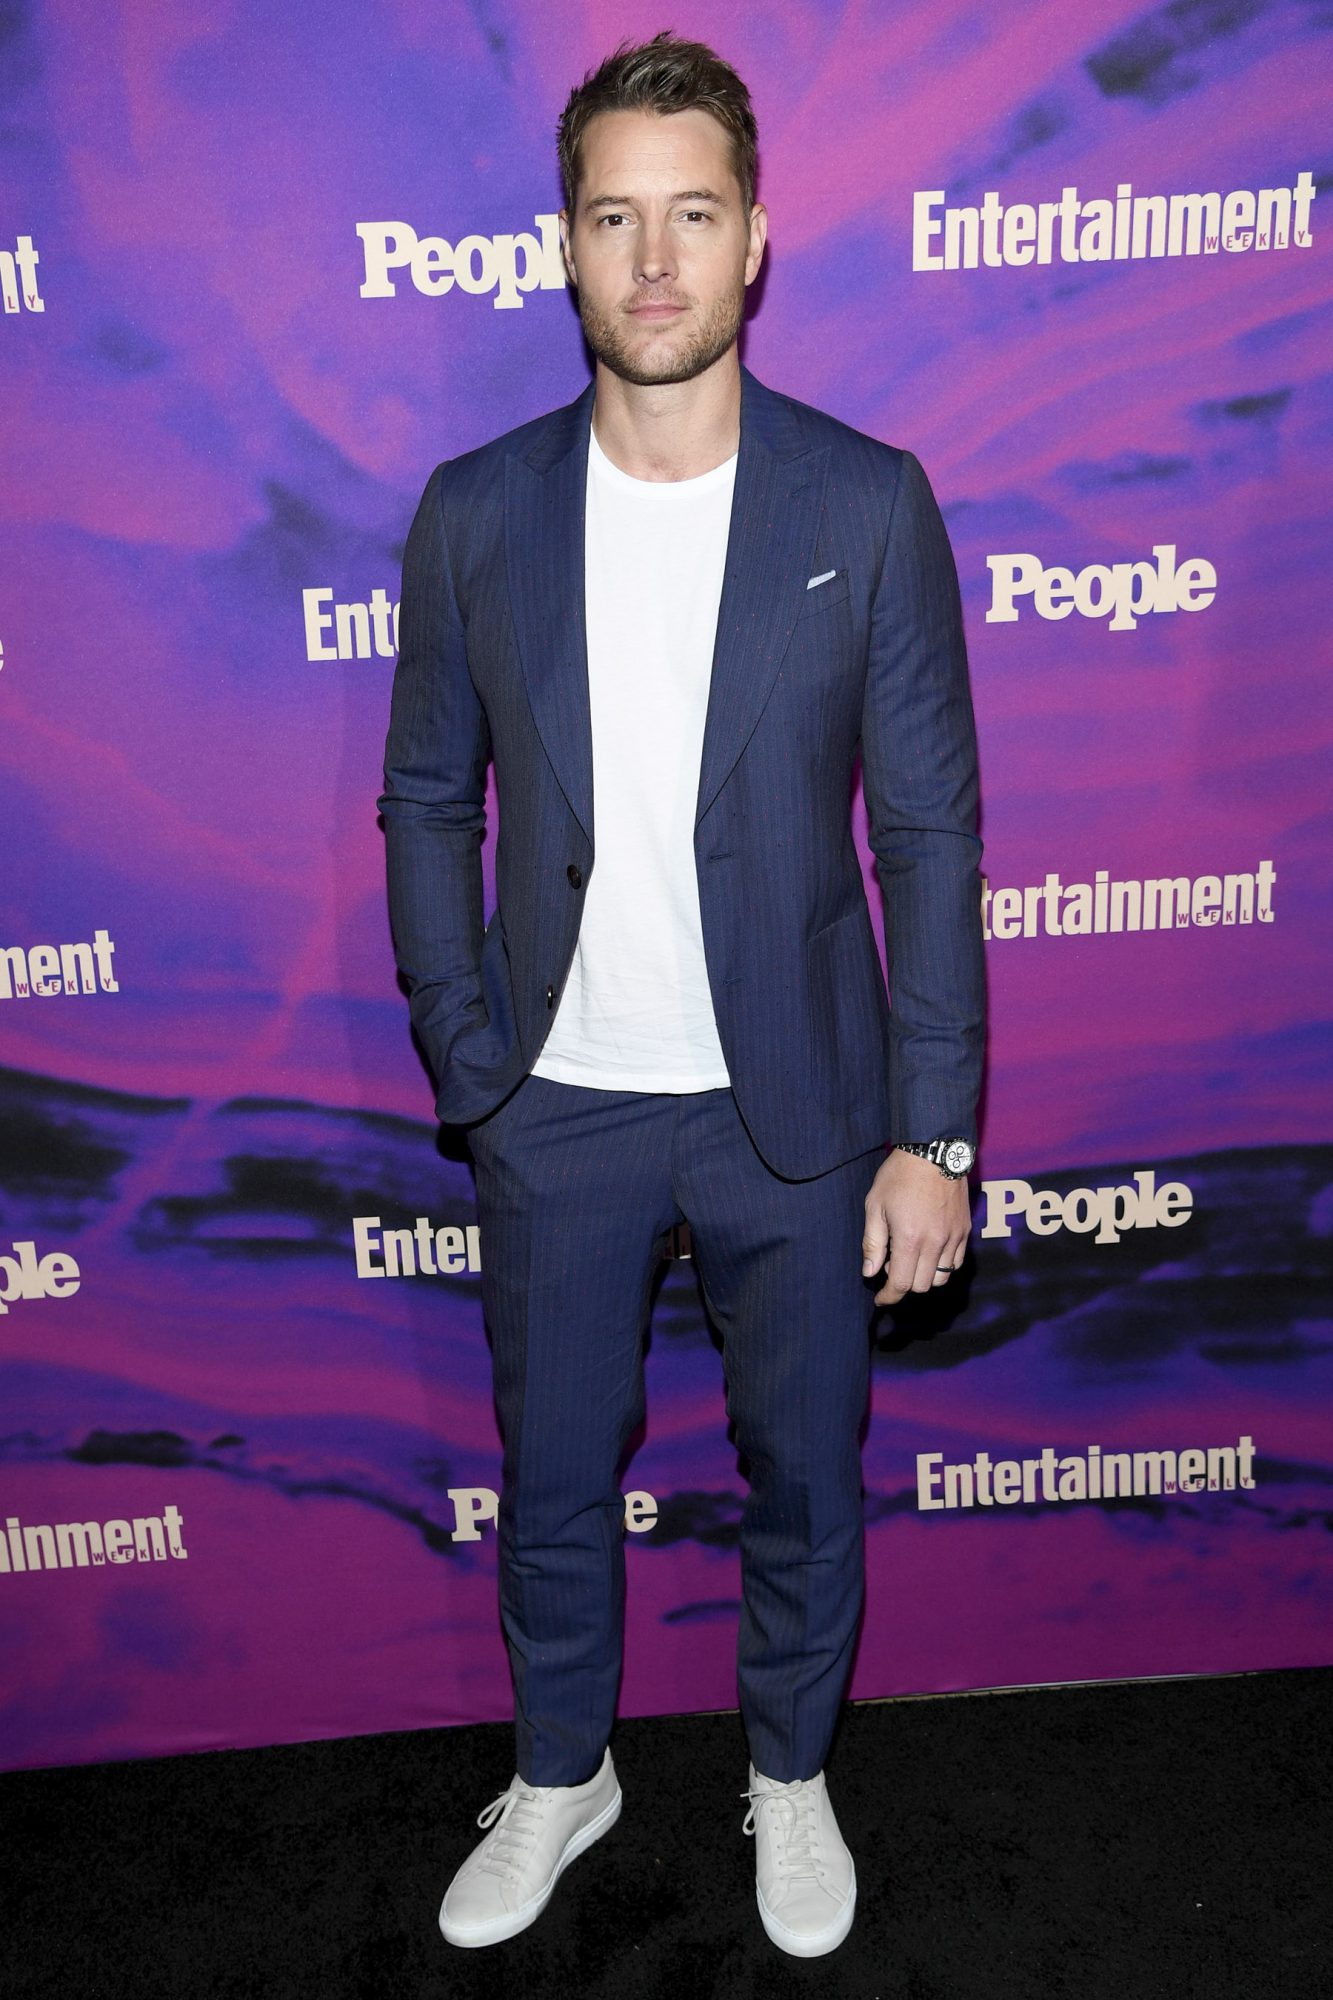 NEW YORK, NEW YORK - MAY 13: Justin Hartley of This Is Us attends the Entertainment Weekly & PEOPLE New York Upfronts Party on May 13, 2019 in New York City. (Photo by Dimitrios Kambouris/Getty Images for Entertainment Weekly & PEOPLE)